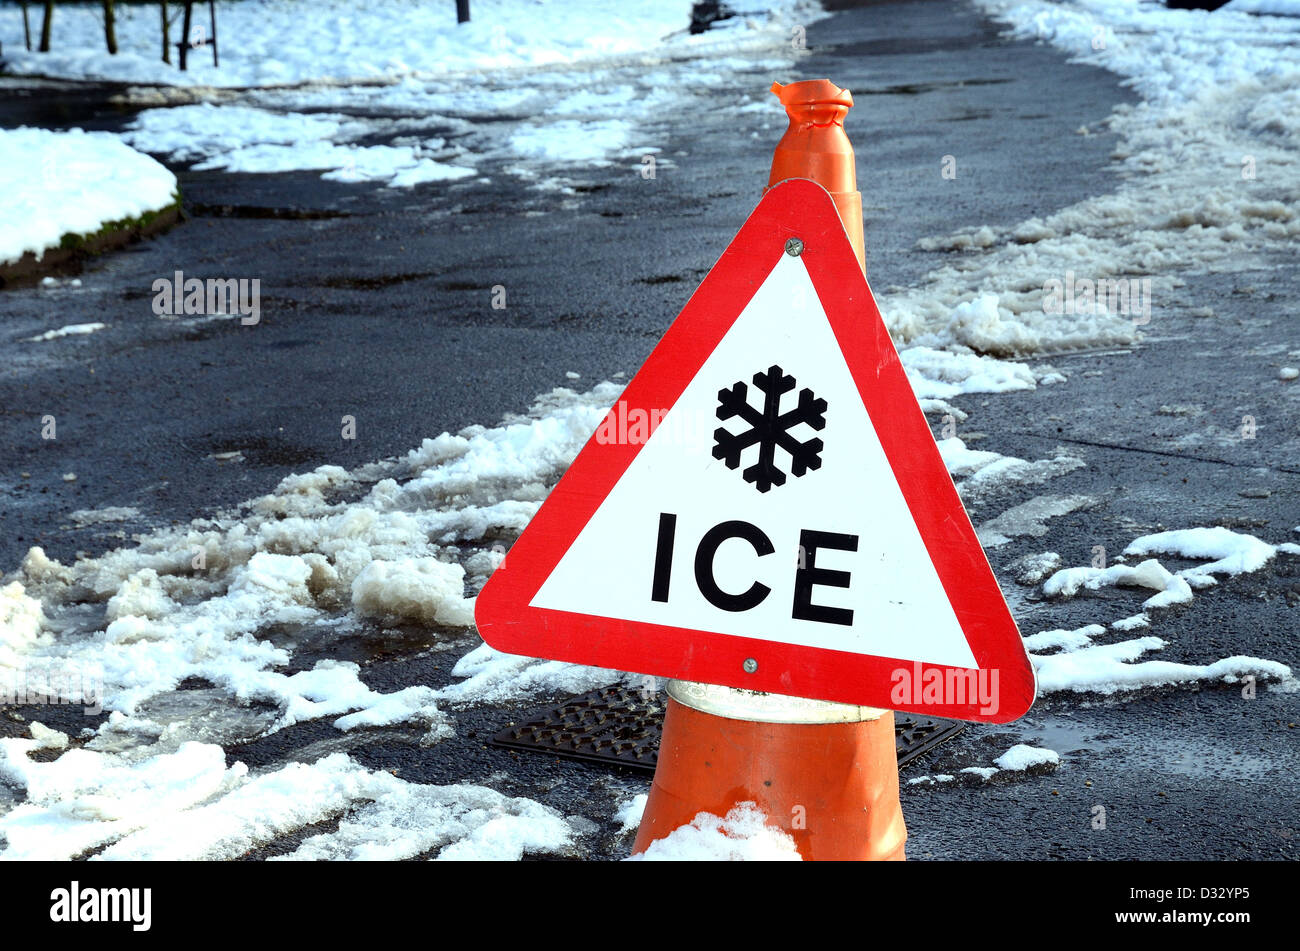 Ice warning  sign on snowy path - Stock Image